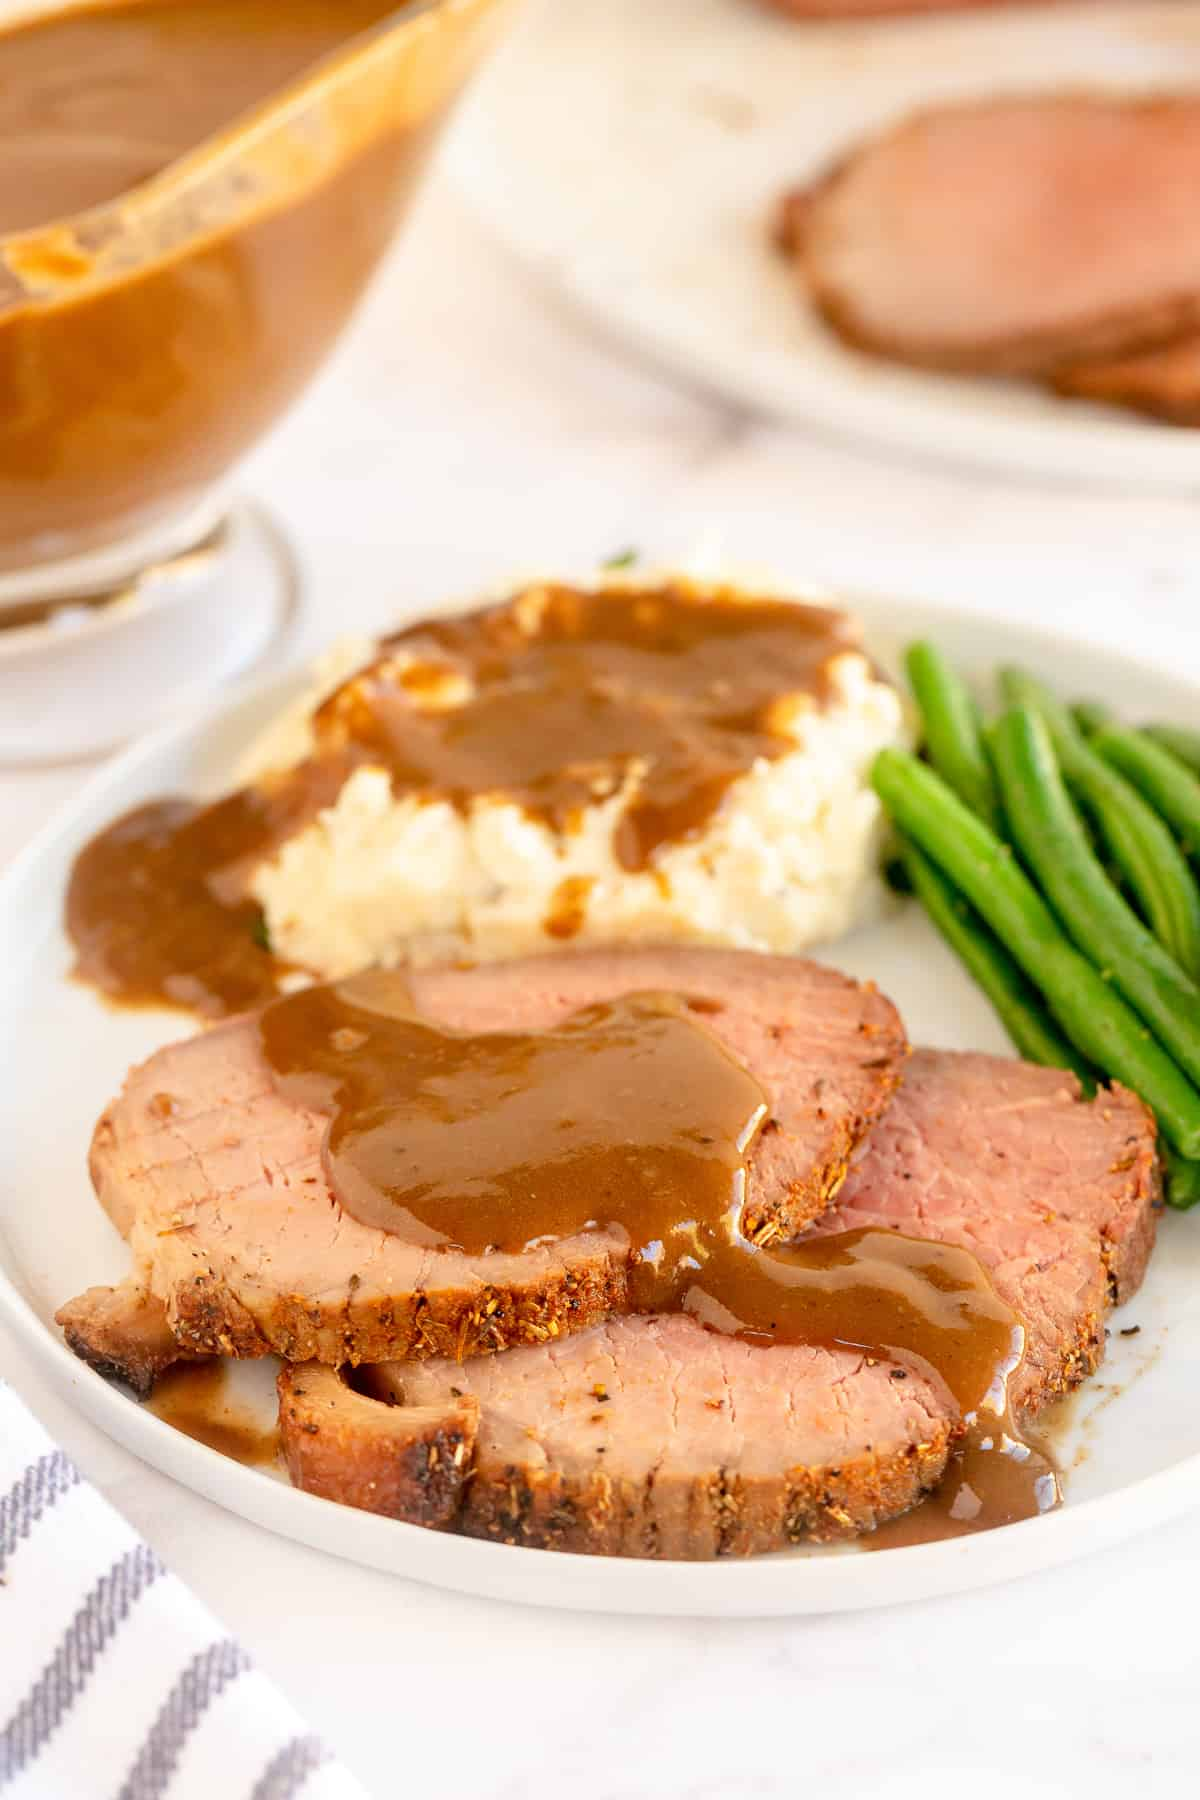 Slices of roast beef and mashed potatoes topped with gravy.